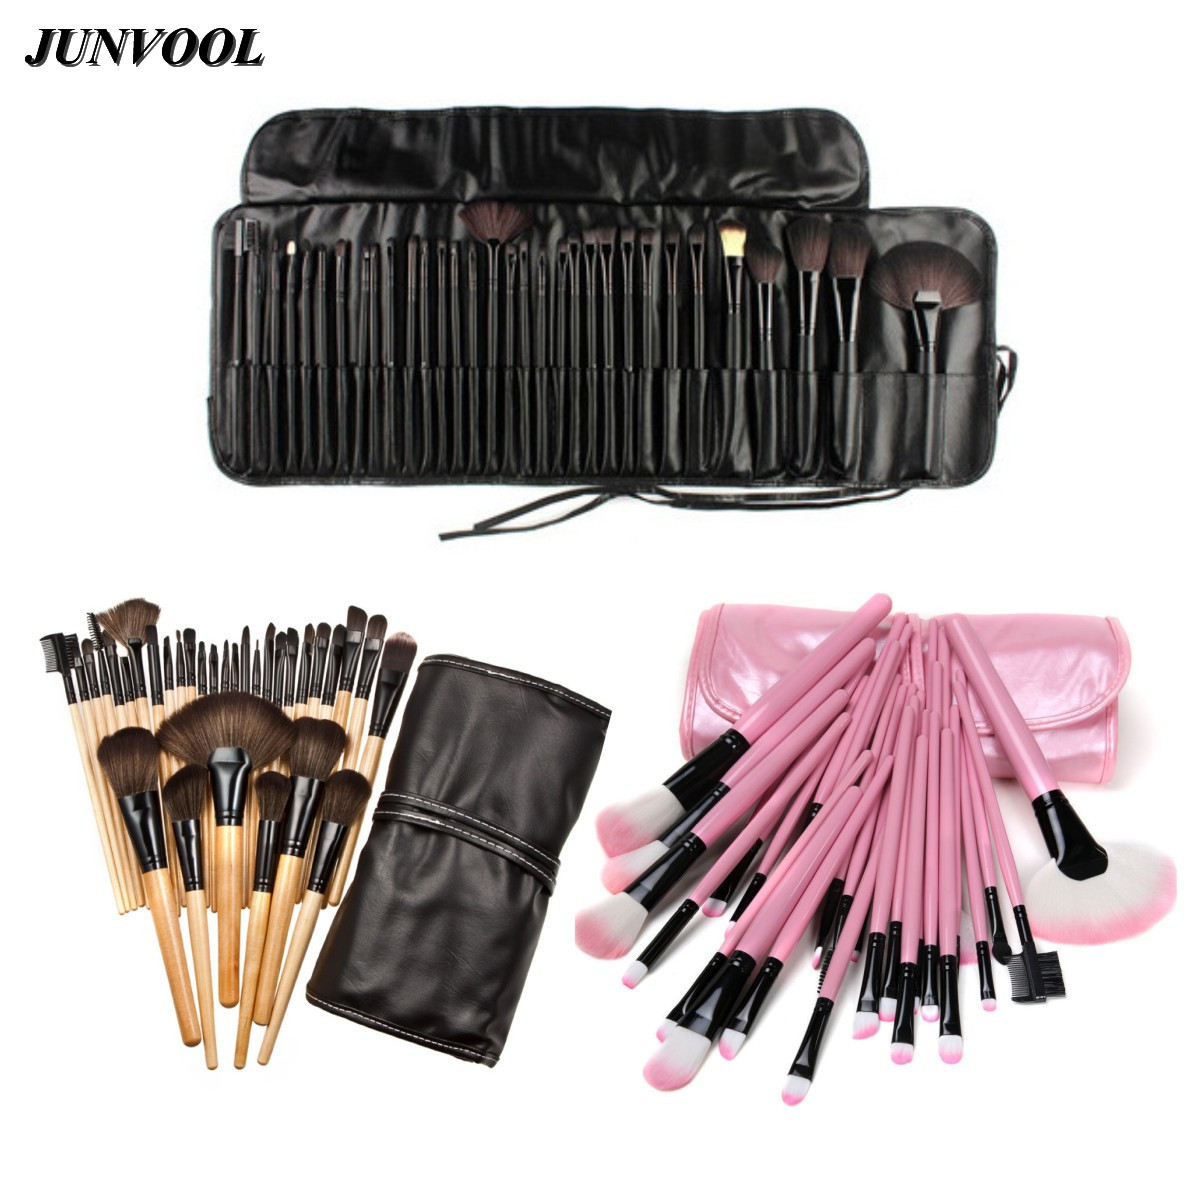 32pcs Mini Pro Makeup Brushes Set&Ke Soft Synthetic Hair Make Up Tools Cosmetic Beauty Pink Wood Black Brush+ 1 Leather Bag Case 24 pcs soft synthetic hair make up tools kit cosmetic beauty makeup brush sets foundation brushes with pink love heart case